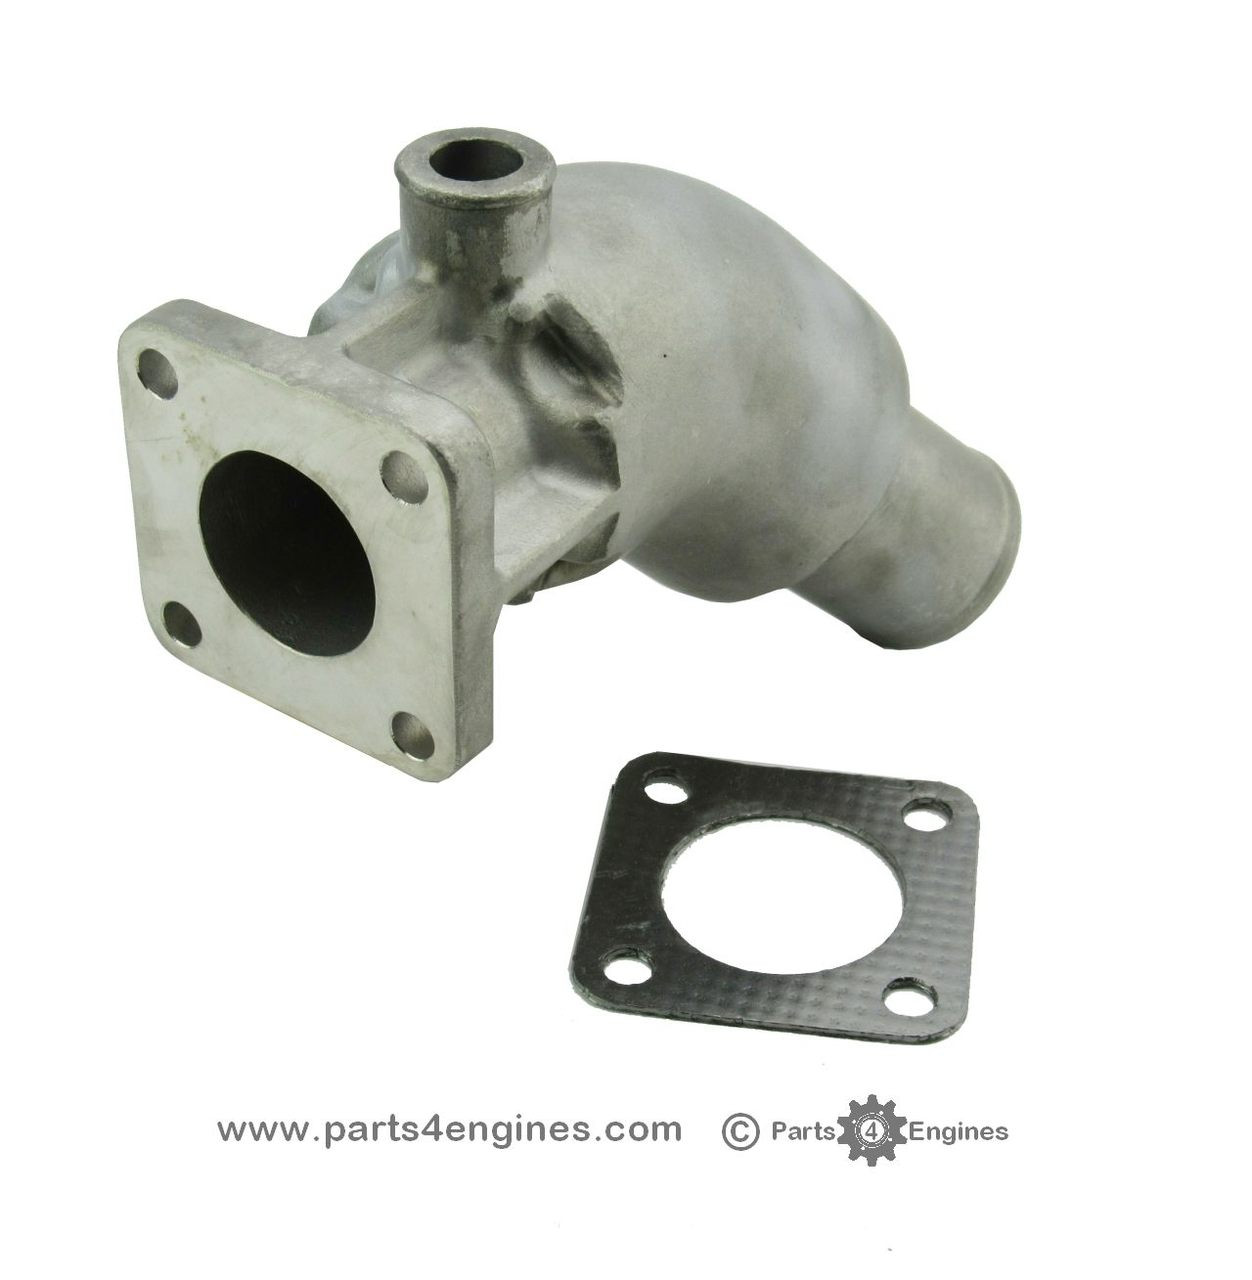 Volvo Penta D1-30 stainless steel exhaust outlet kit from parts4engines.com